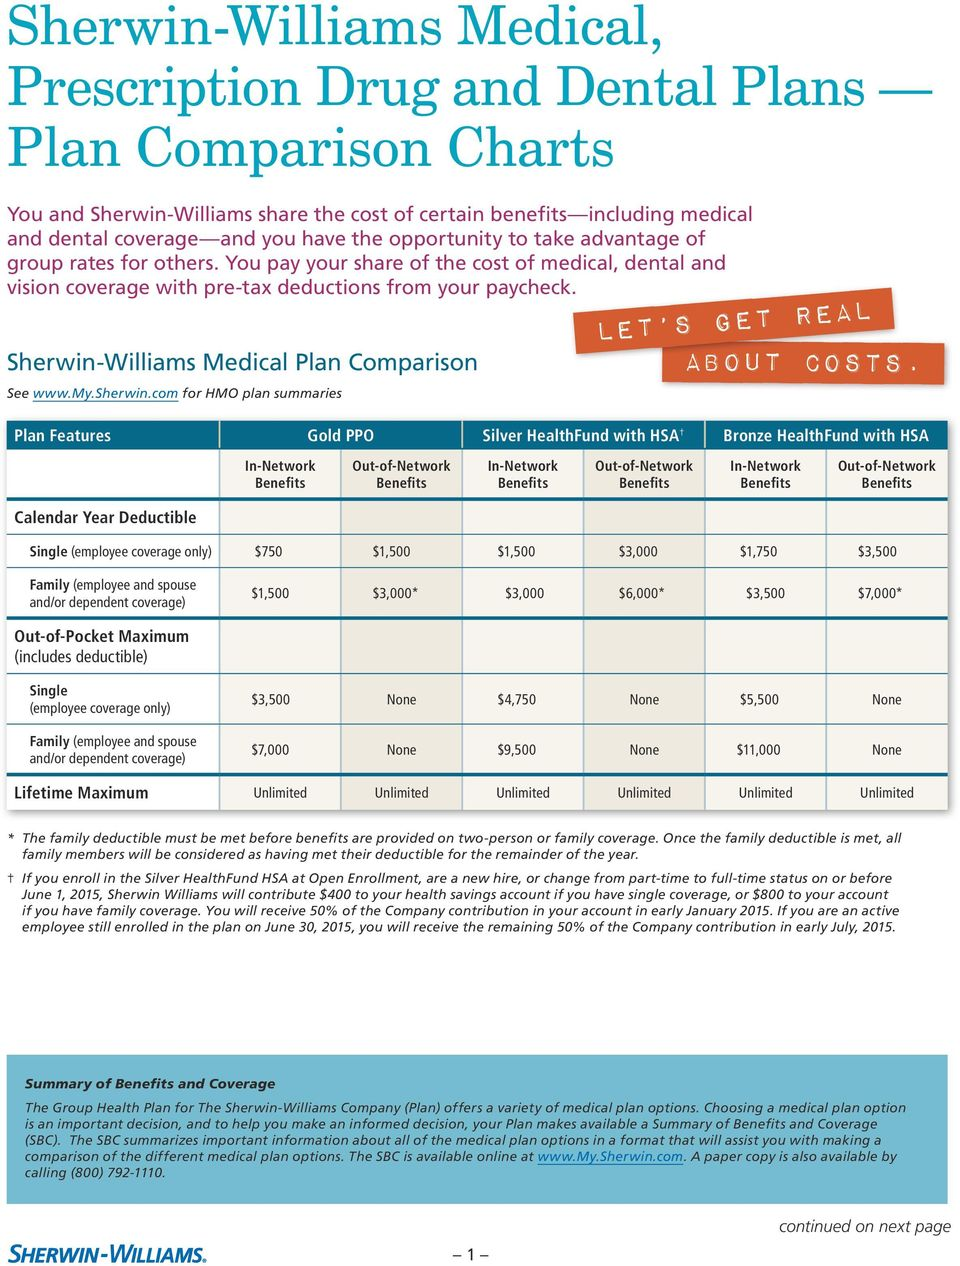 Sherwin-Williams Medical Plan Comparison See www.my.sherwin.com for HMO plan summaries Let s Get real about costs.